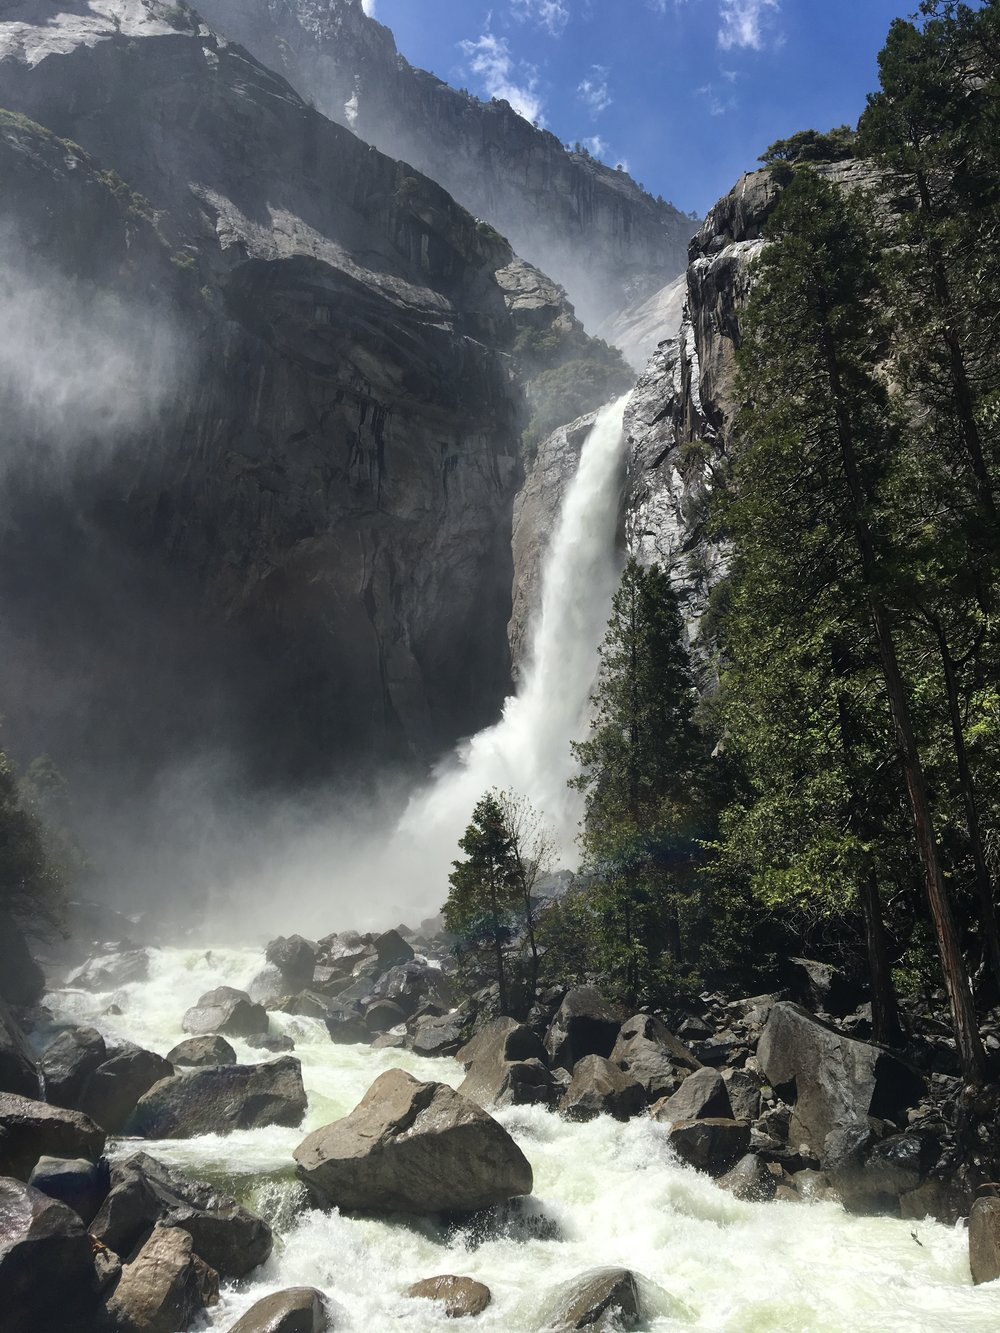 Exploring Yosemite National Park leads you to majestic waterfalls, Half Dome, El Capitan, hikes galore, and the best way to see it all is by camping in the park.  Grab your sleeping bags and binoculars for some of the best natural sights in America.